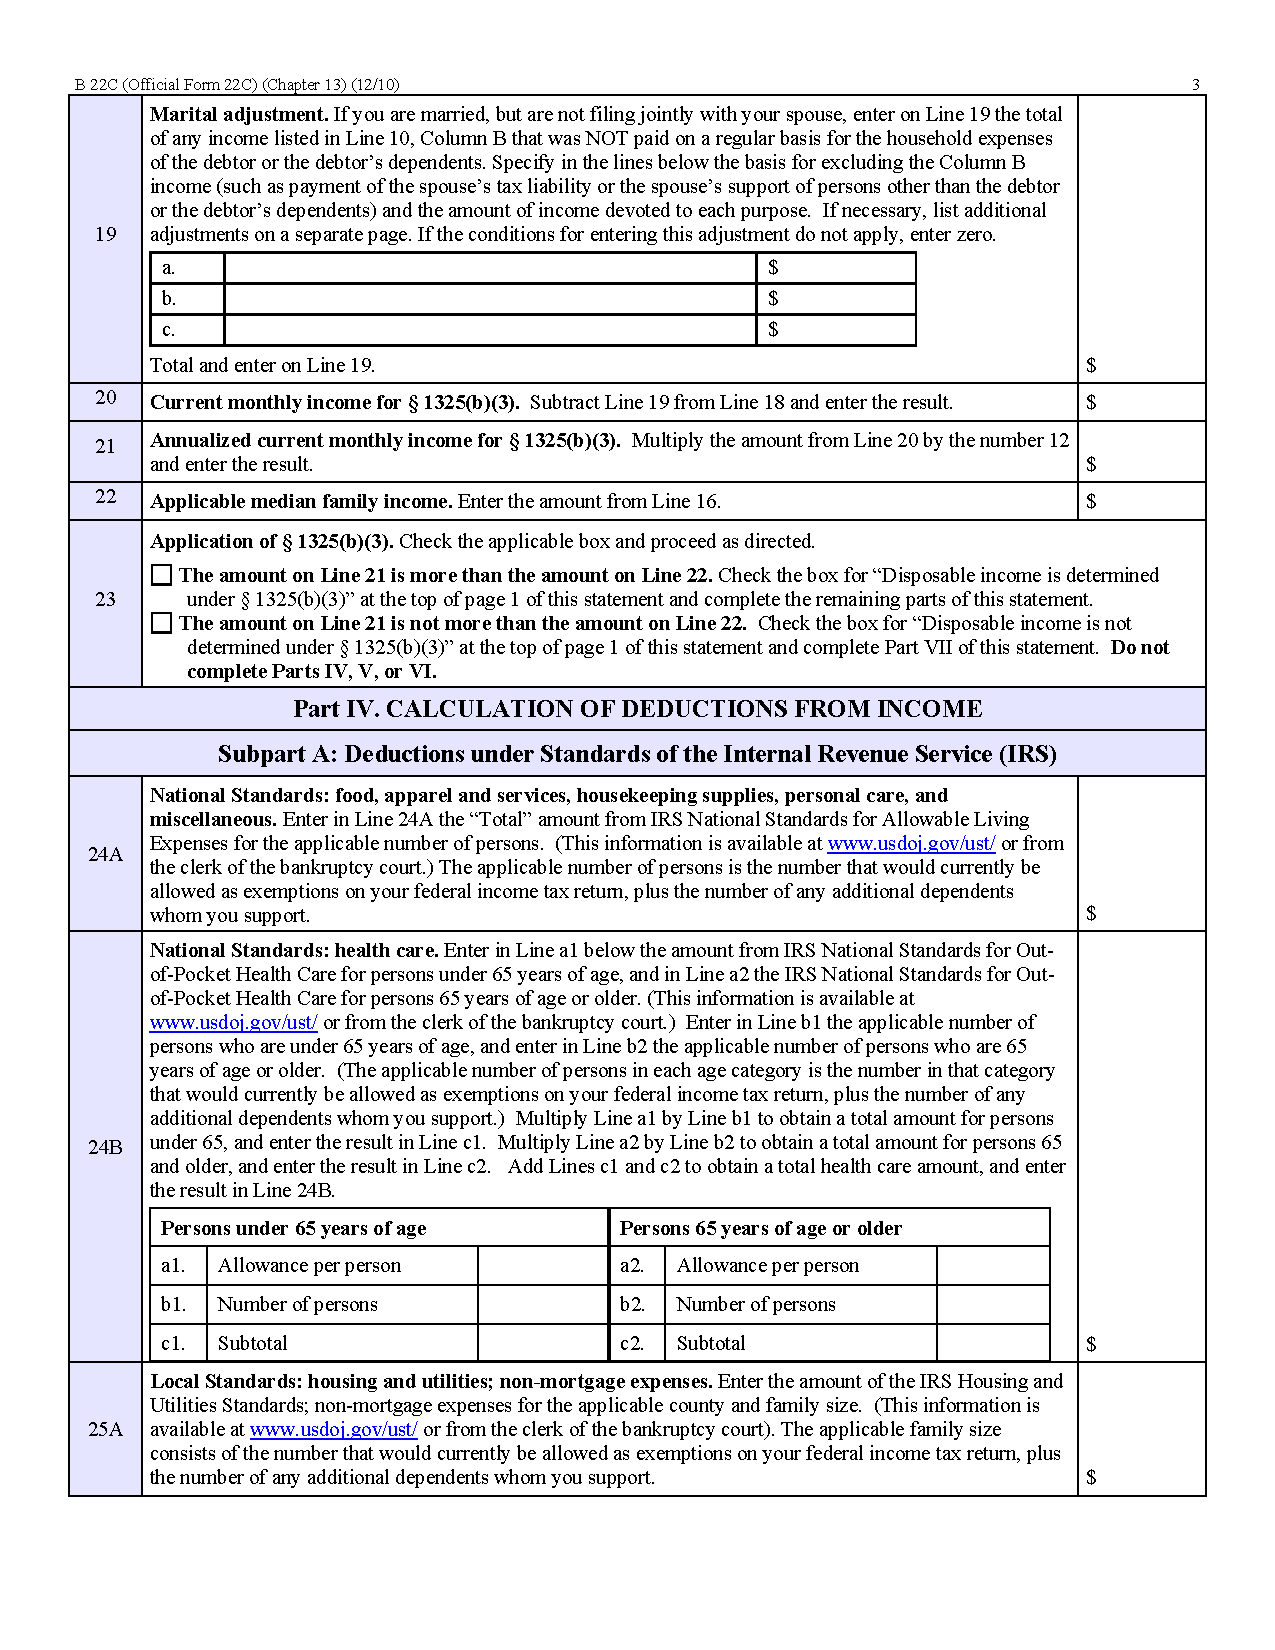 Form B 22c Statement Of Current Monthly Income And Calculation Of Commitment Period And